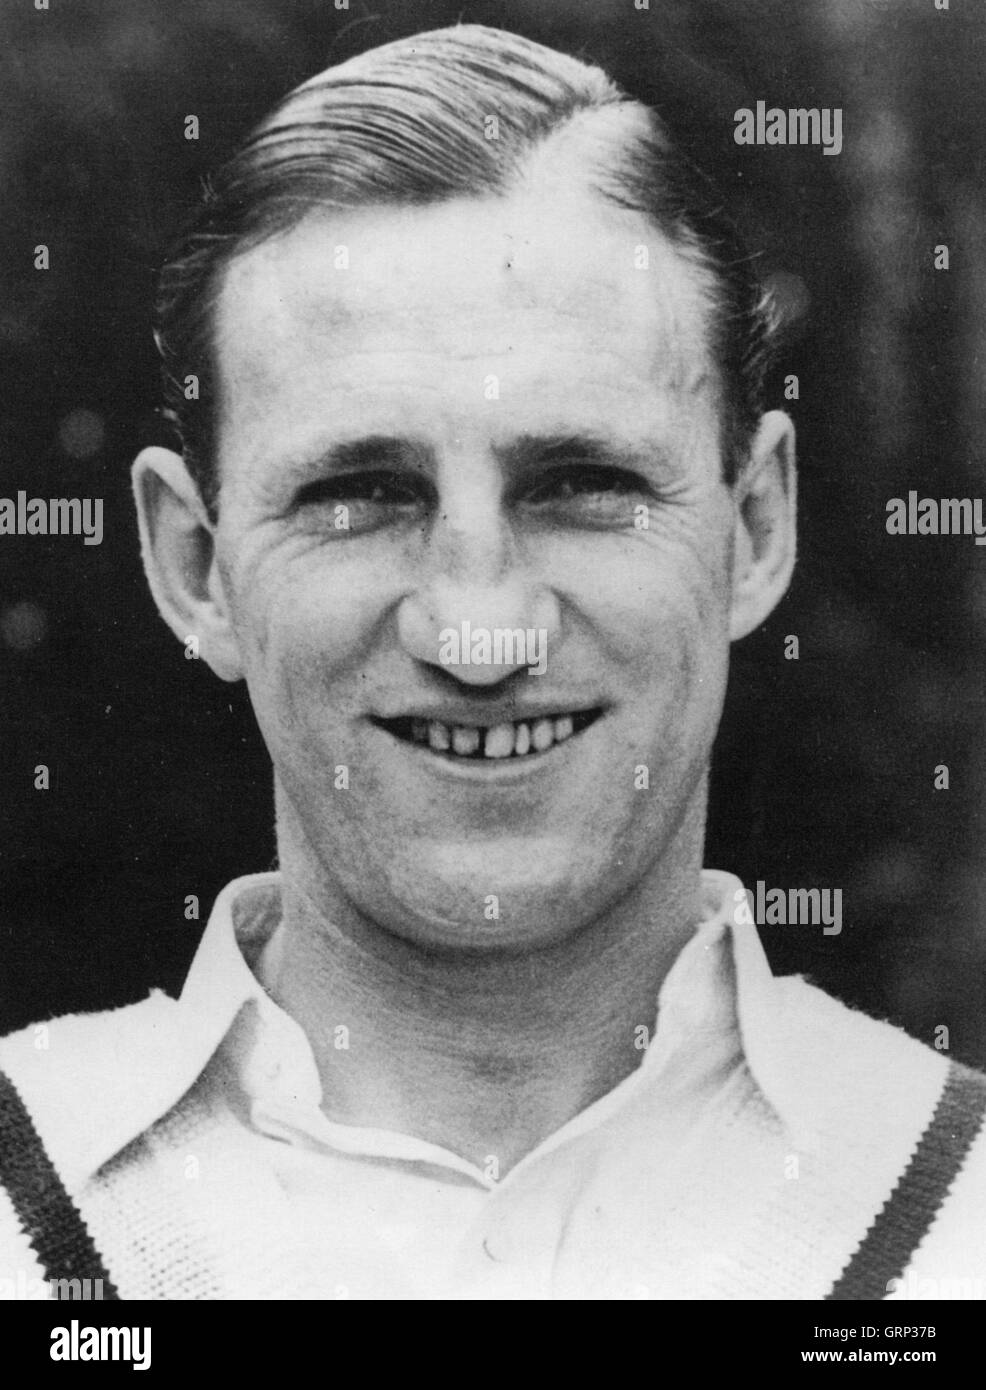 LEN HUTTON (1916-1990) English cricketer about 1938 - Stock Image